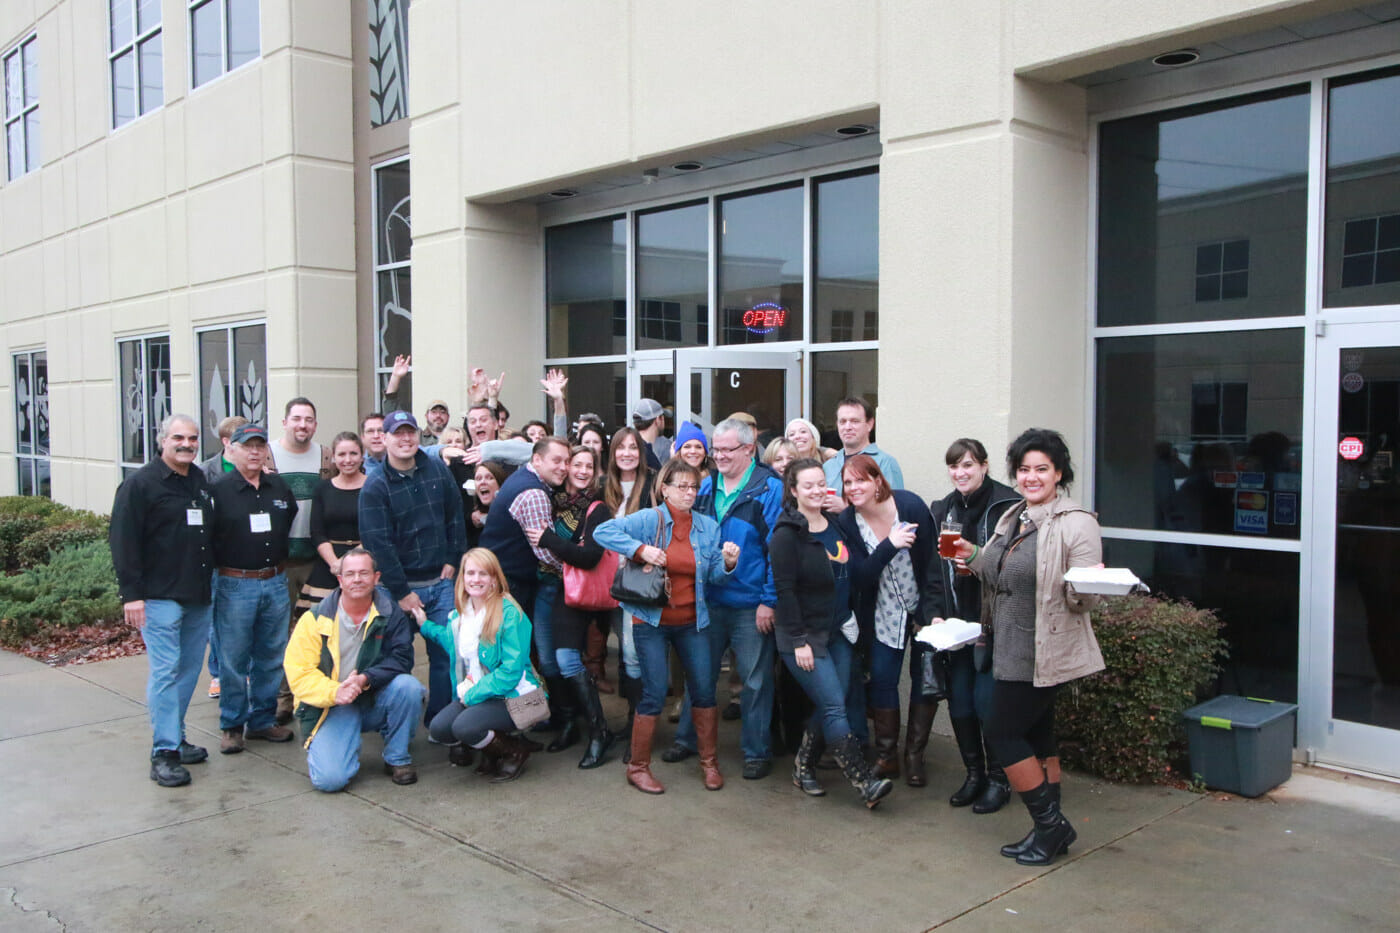 12.6.14 – Brew Ha Ha Tour Group Picture @ D9 Brewery